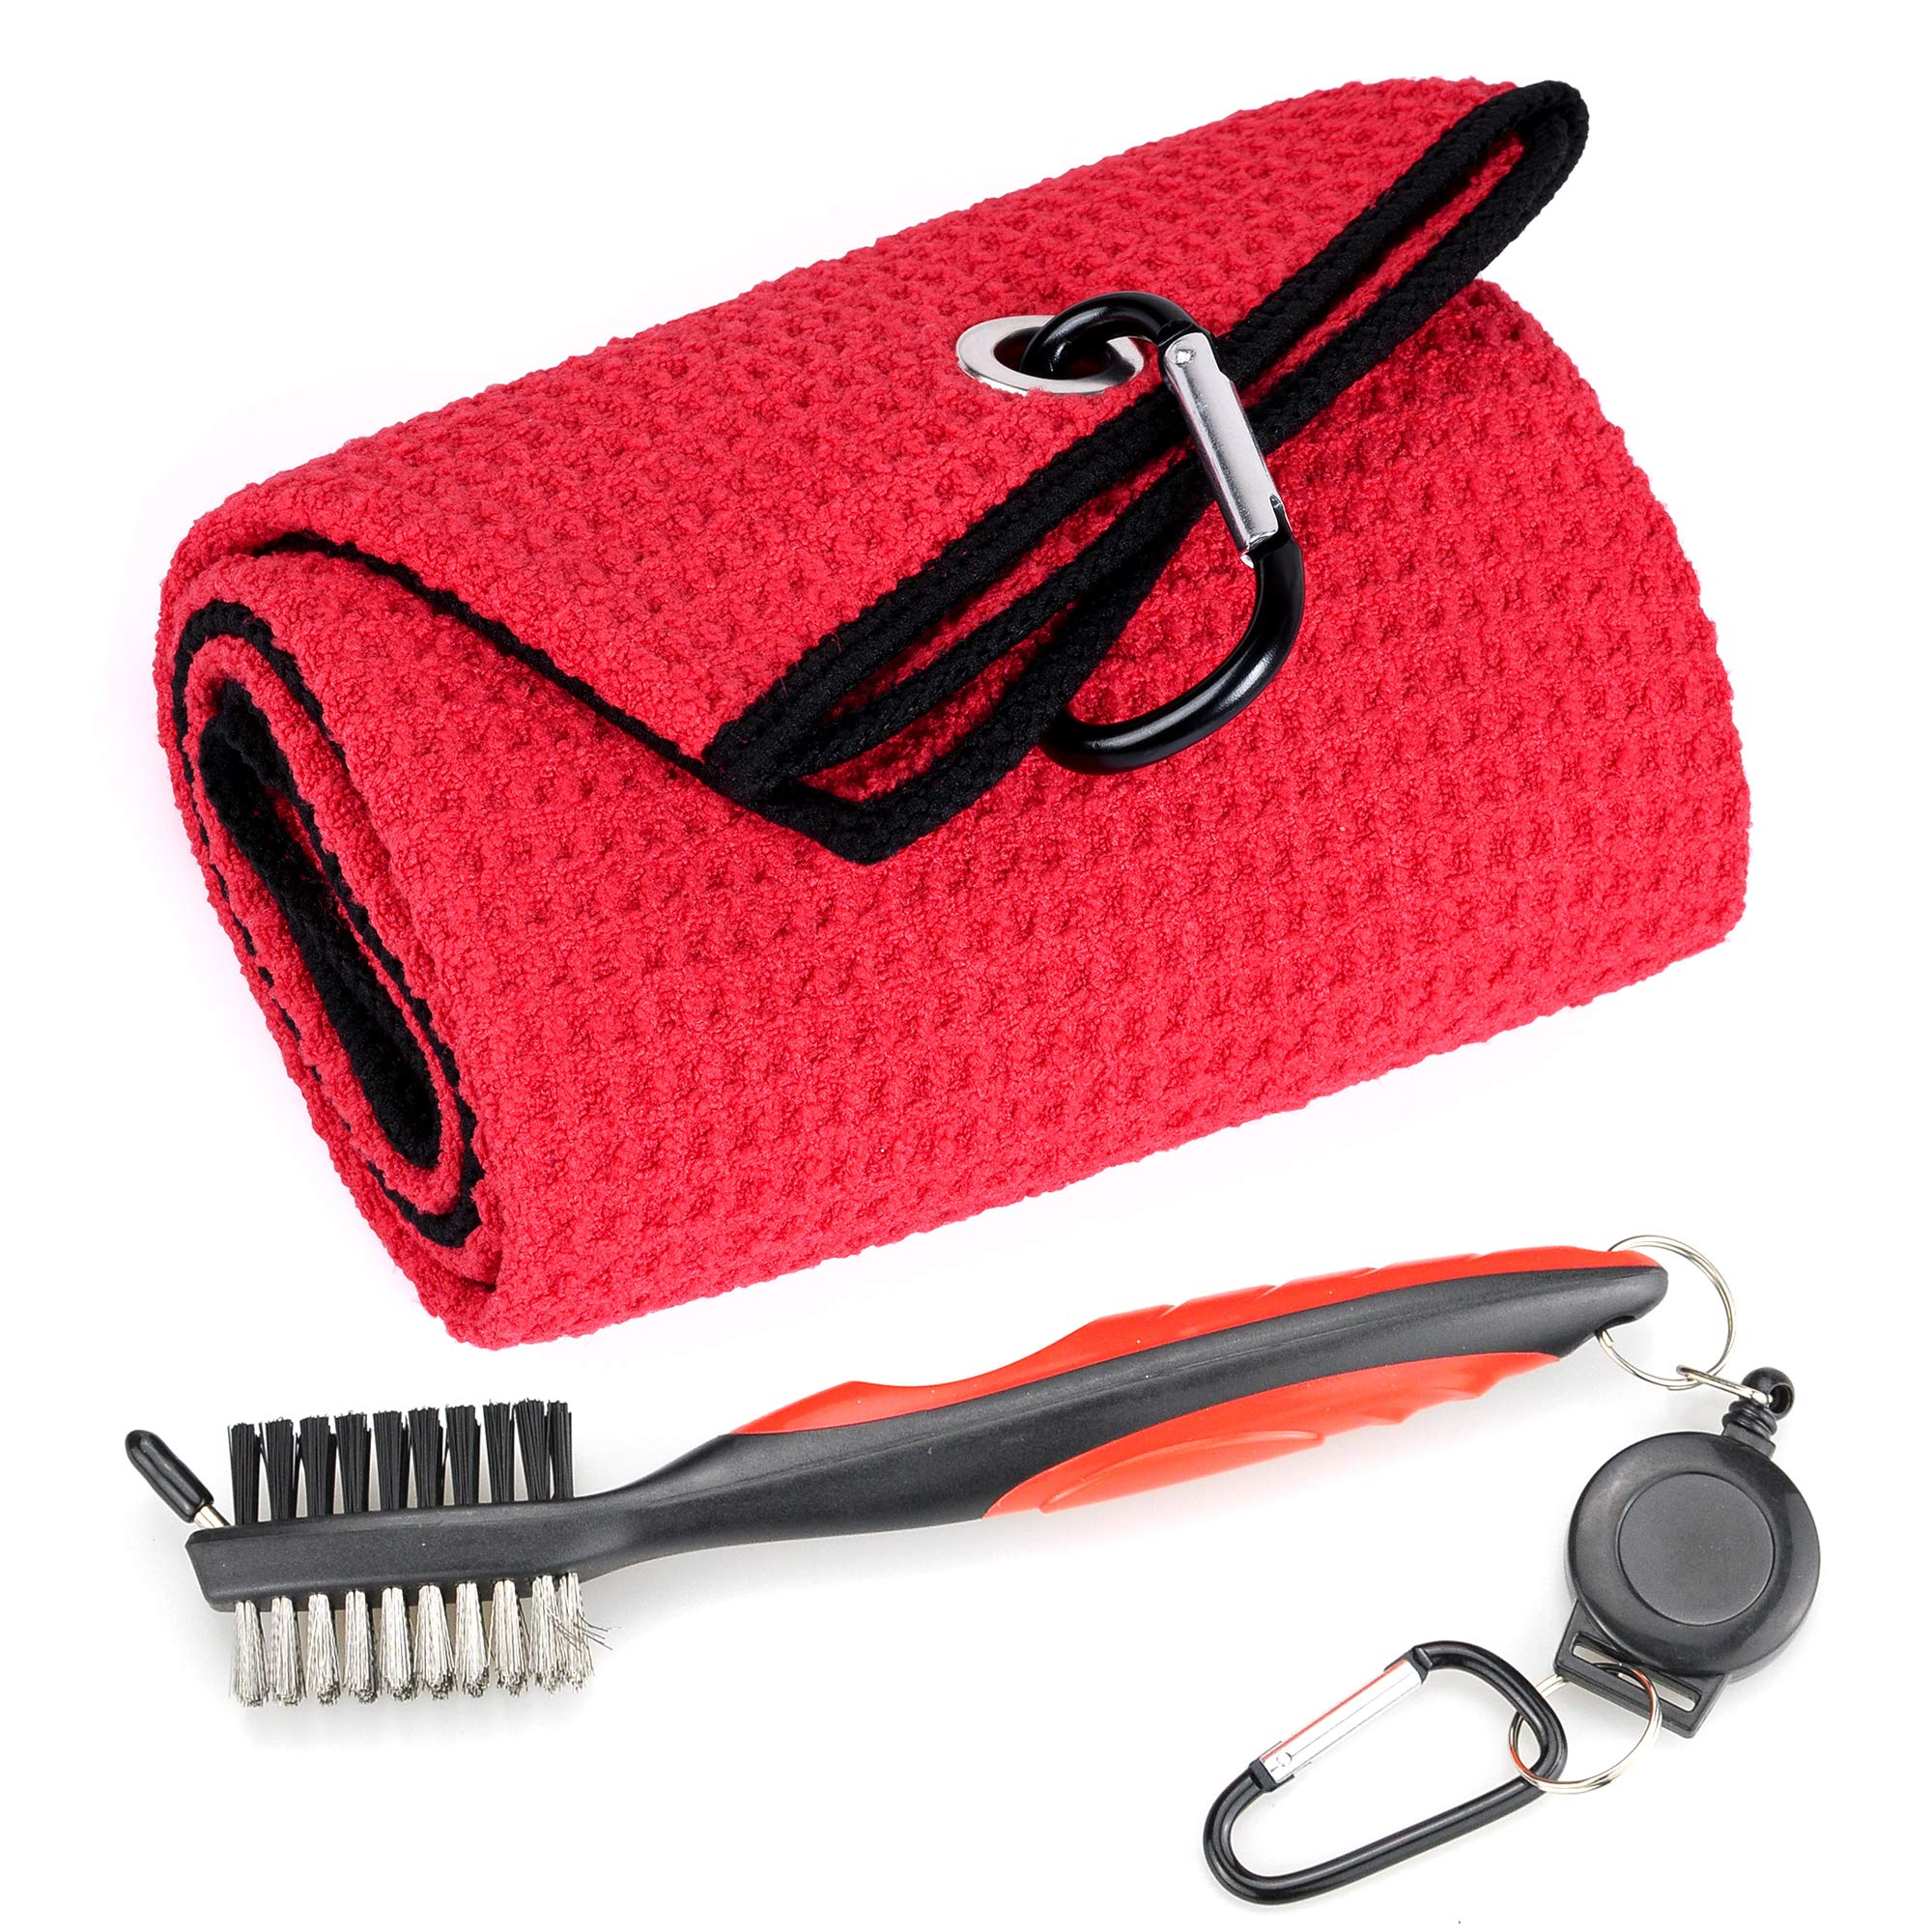 Mile High Life Microfiber Waffle Pattern Tri-fold Golf Towel | Brush Tool Kit with Club Groove Cleaner, Retractable Extension Cord and Clip (Red Towel+Red Brush) by Mile High Life